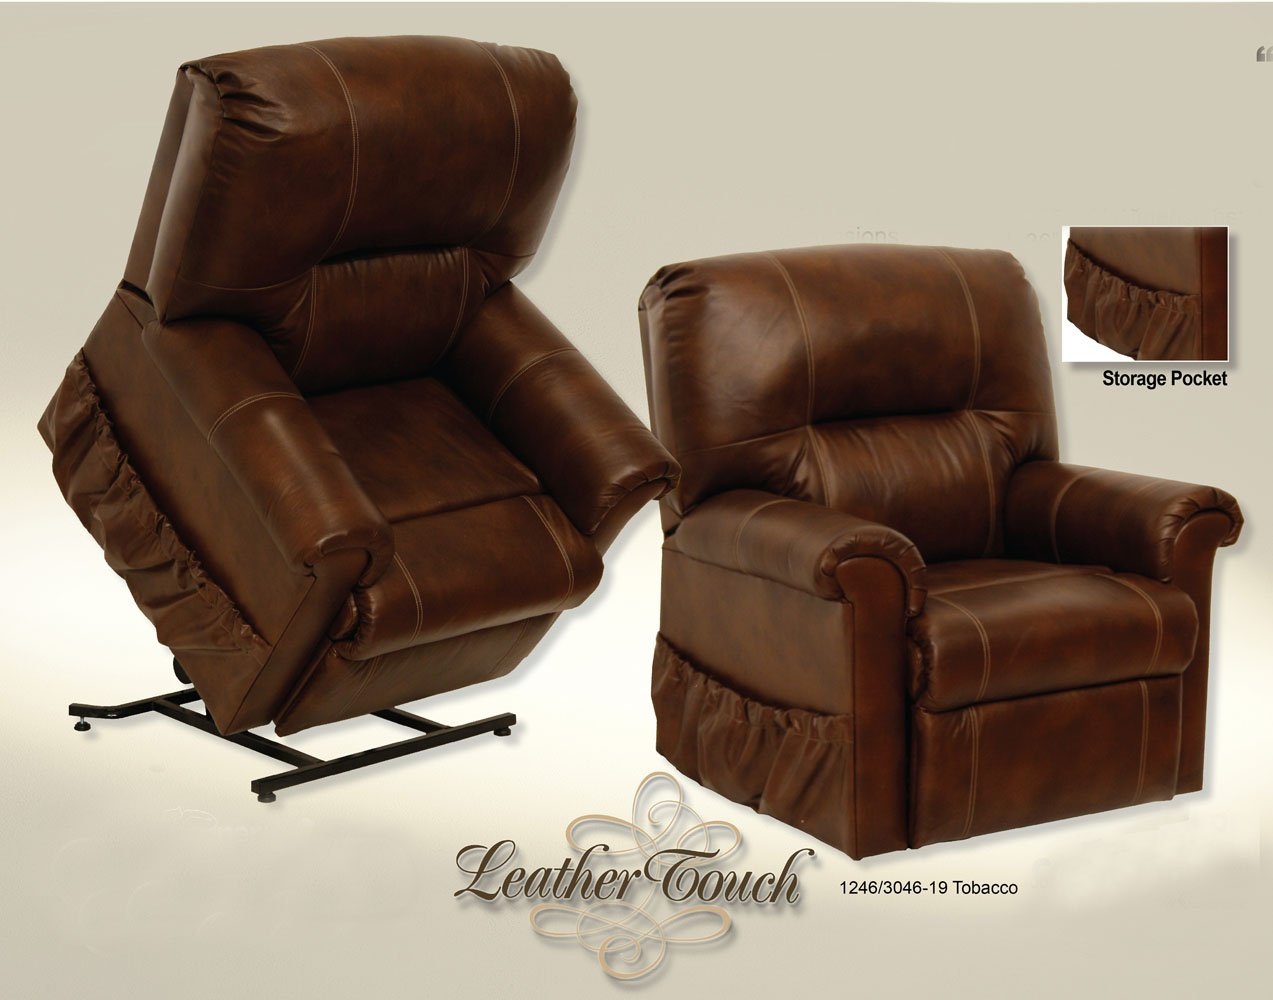 Our Best Leather Recliner Recommendation : handicap recliners - islam-shia.org